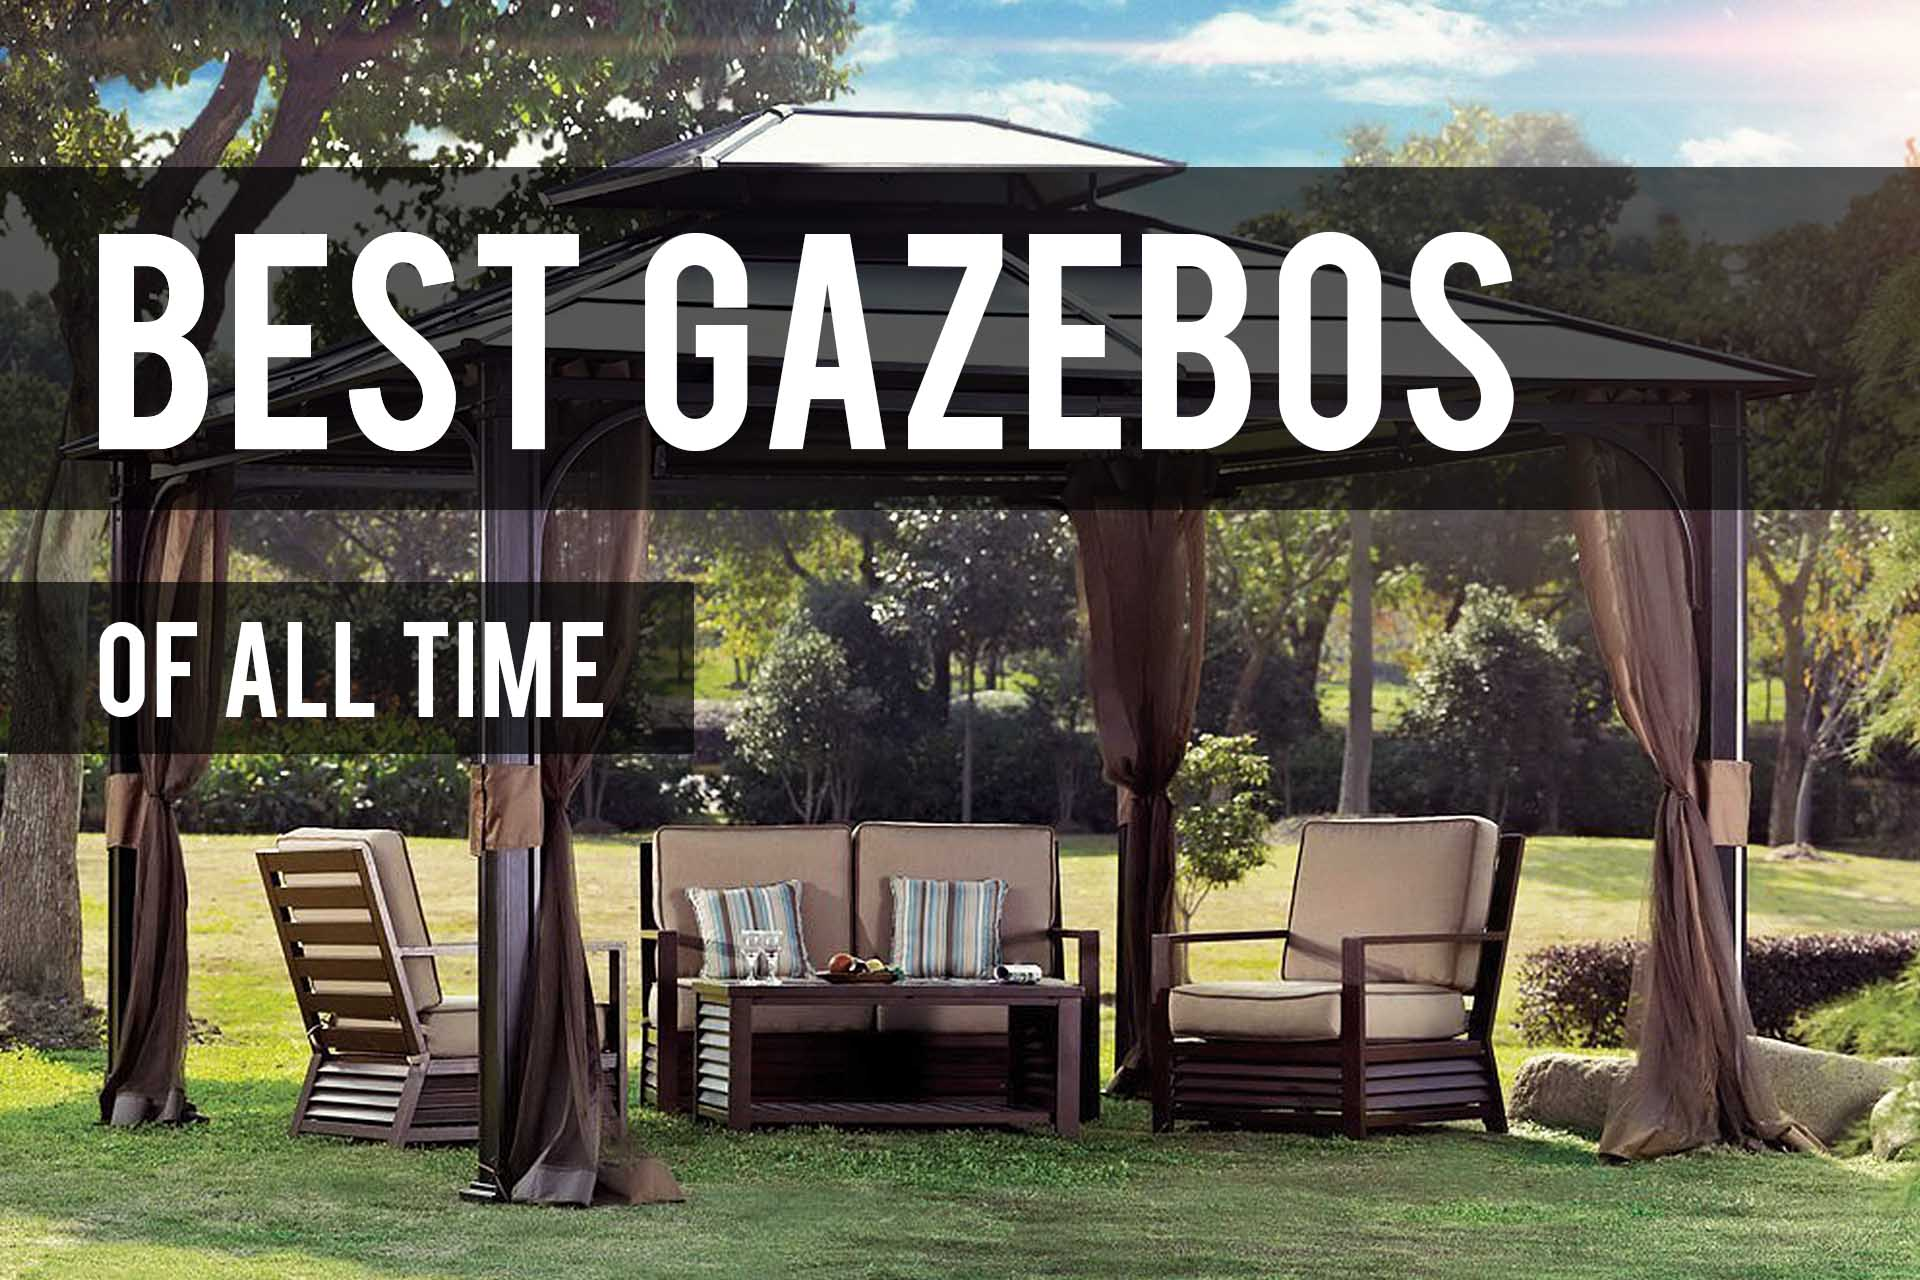 ... Gazebos Have Been Offering Us Big Shade, Stunning Looks And Comfort For  Centuries Like No Other Outdoor Structure Can. They Completely Revamp Your  Patio ...